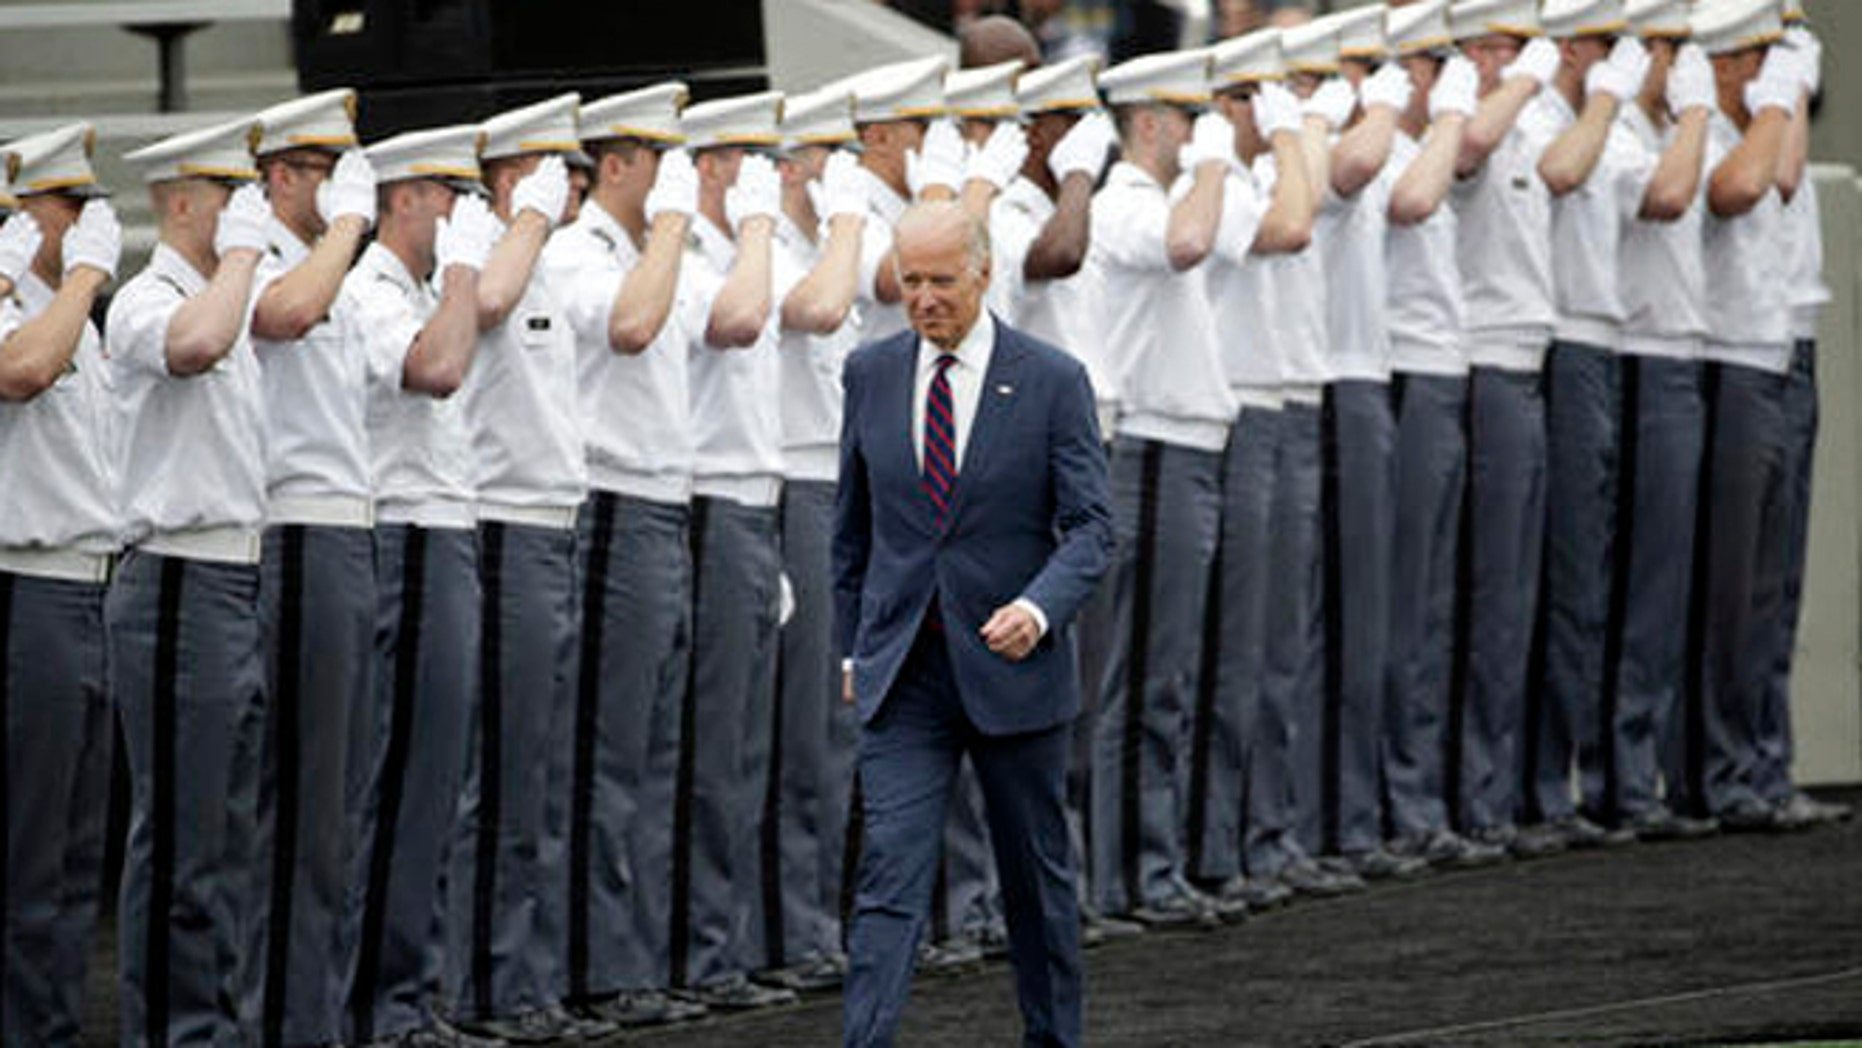 Vice President Joe Biden arrives for a graduation and commissioning ceremony at the U.S. Military Academy on Saturday, May 21, 2016, in West Point, N.Y.